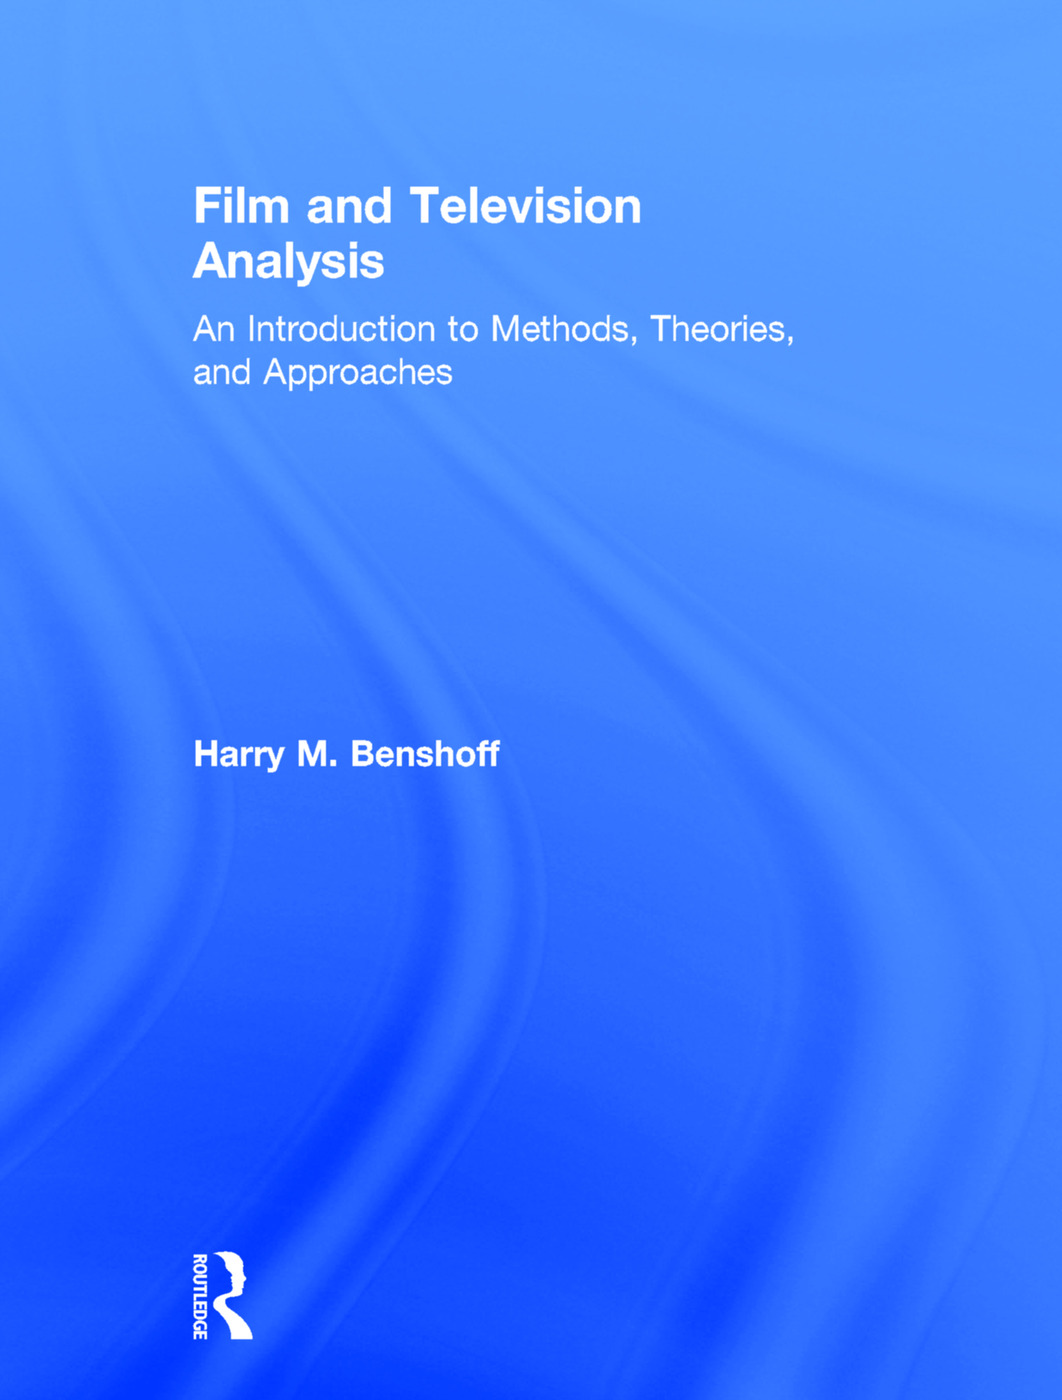 an introduction to the analysis of commercials on television 2017-11-13 introduction 4 2 theoretical framework 21 television  analysis of background music in television commercials 33  however, the effect of music in television commercials on consumer attitudes towards the advertised products and brands is not an easy one to understand.